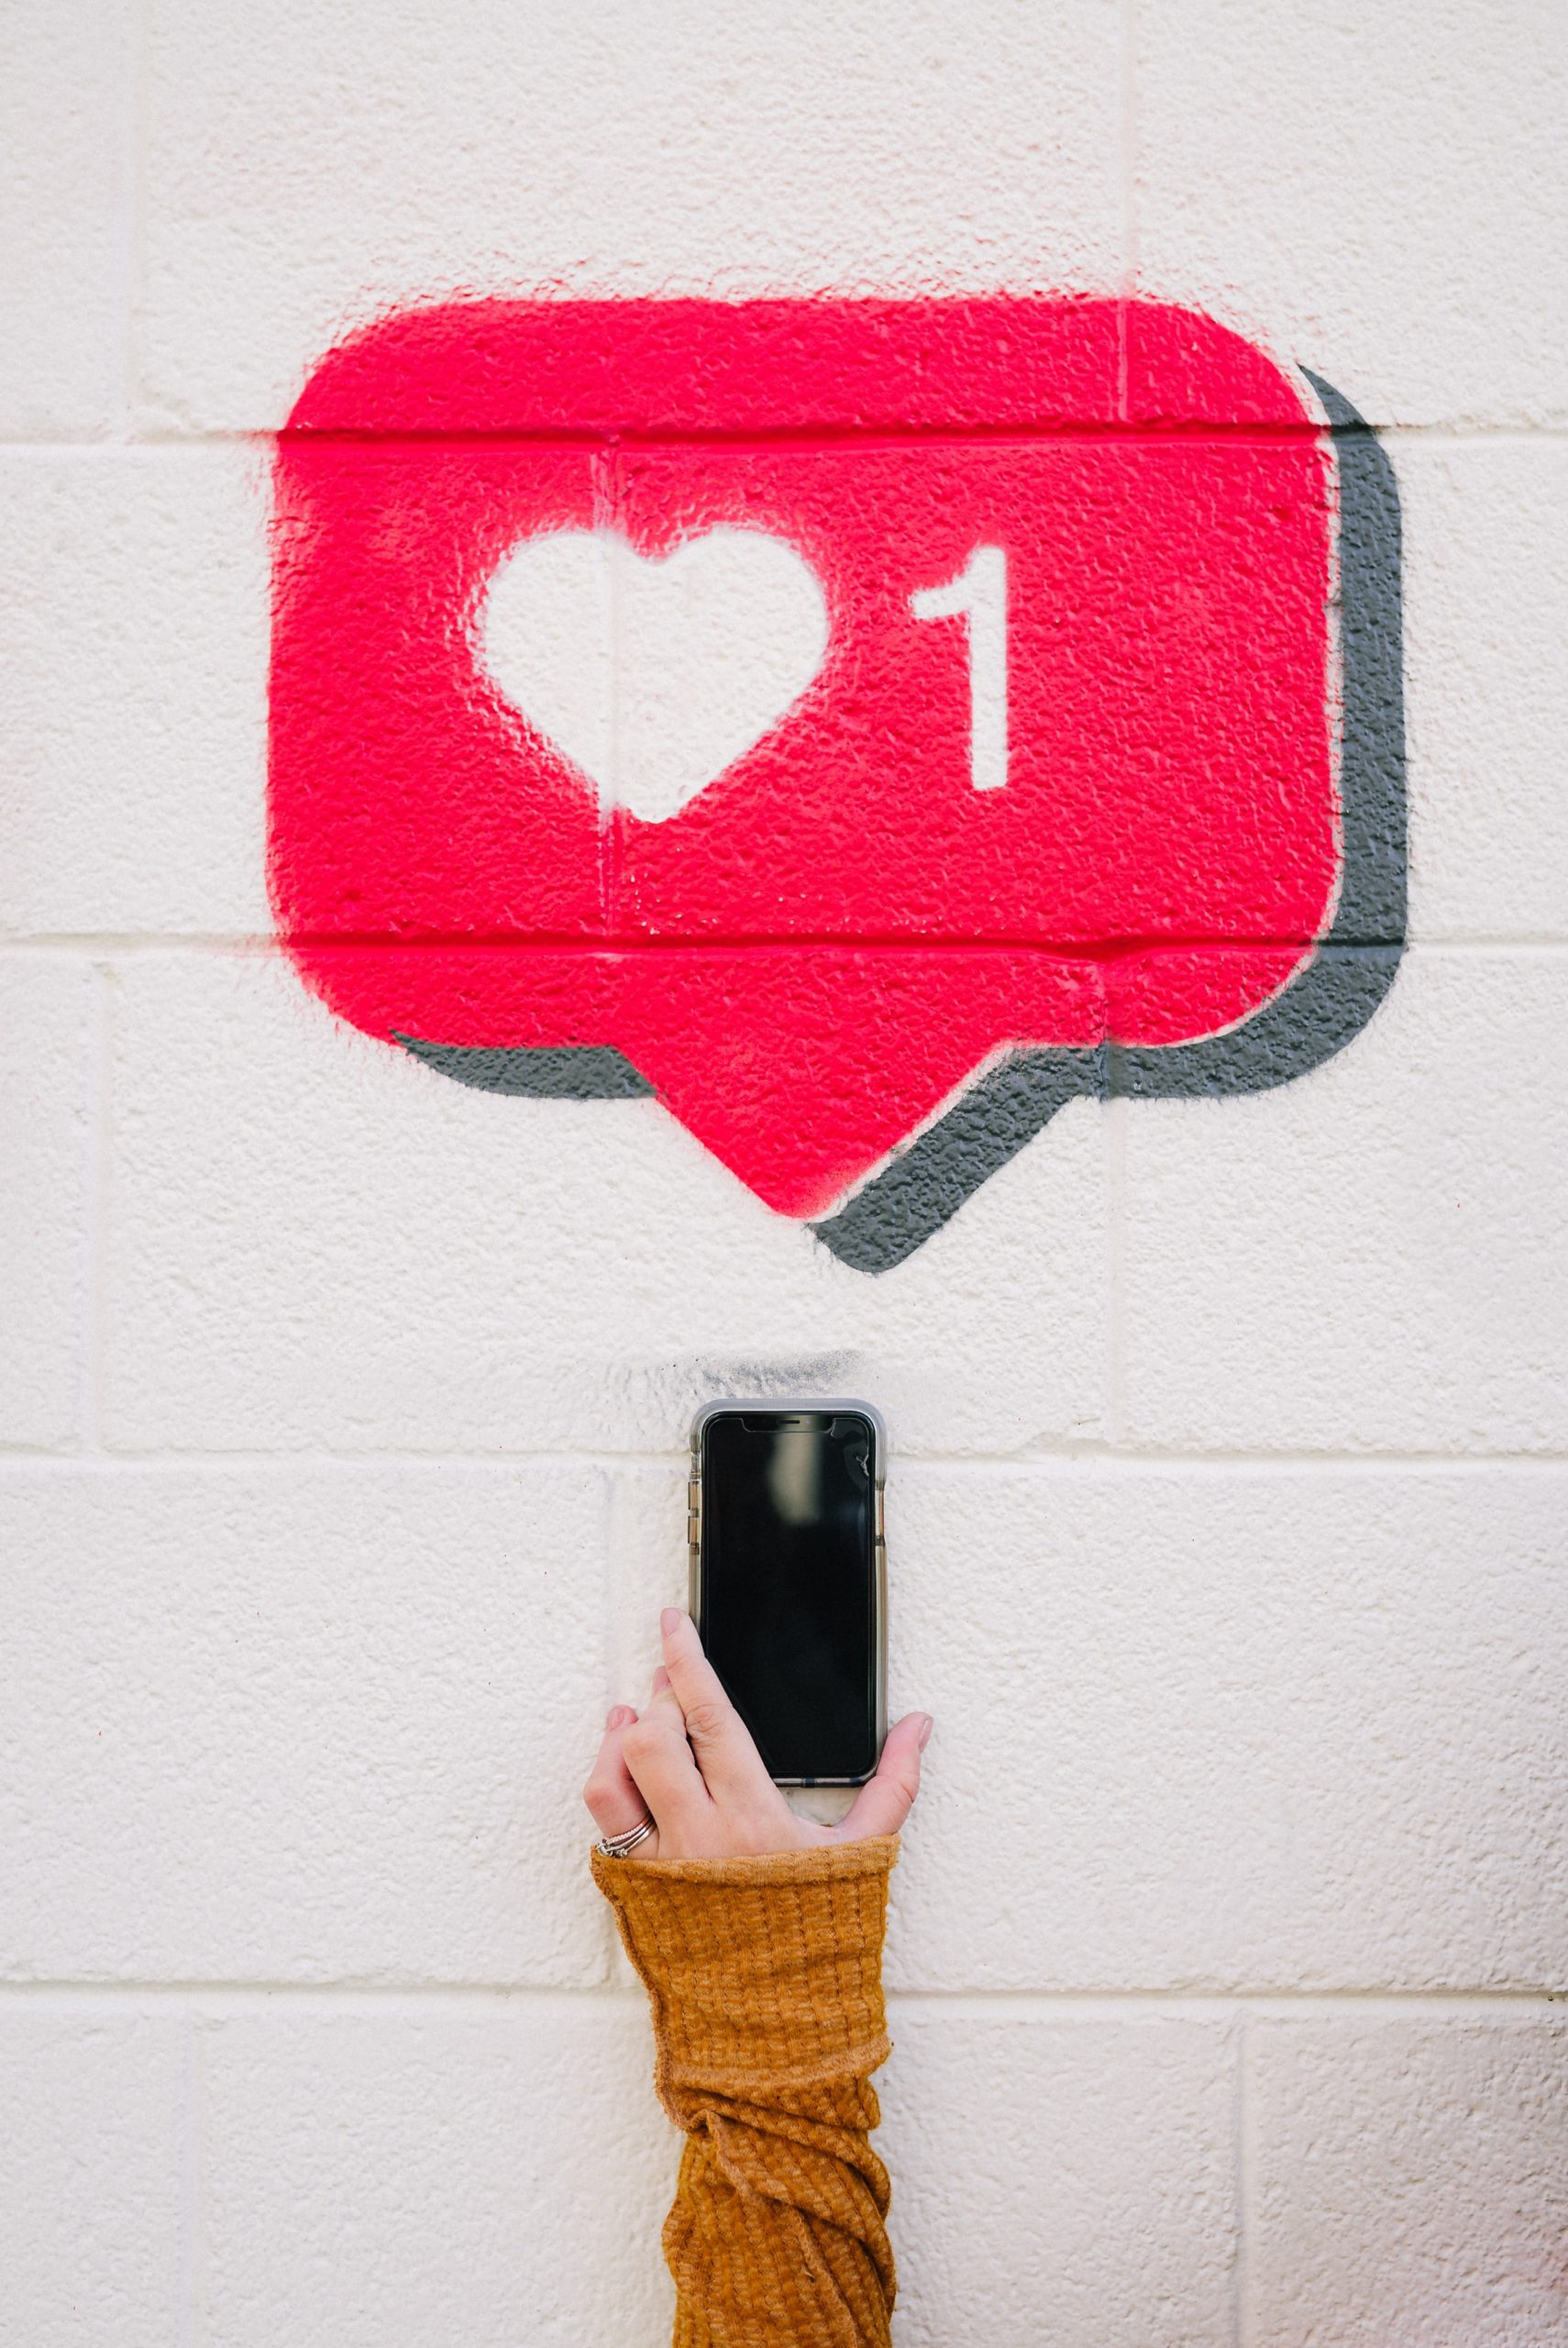 social media notification bubble drawn in pink chalk on a white brick background, has a heart with a number one next to it in the bubble, a hand holding a black cell phone is below